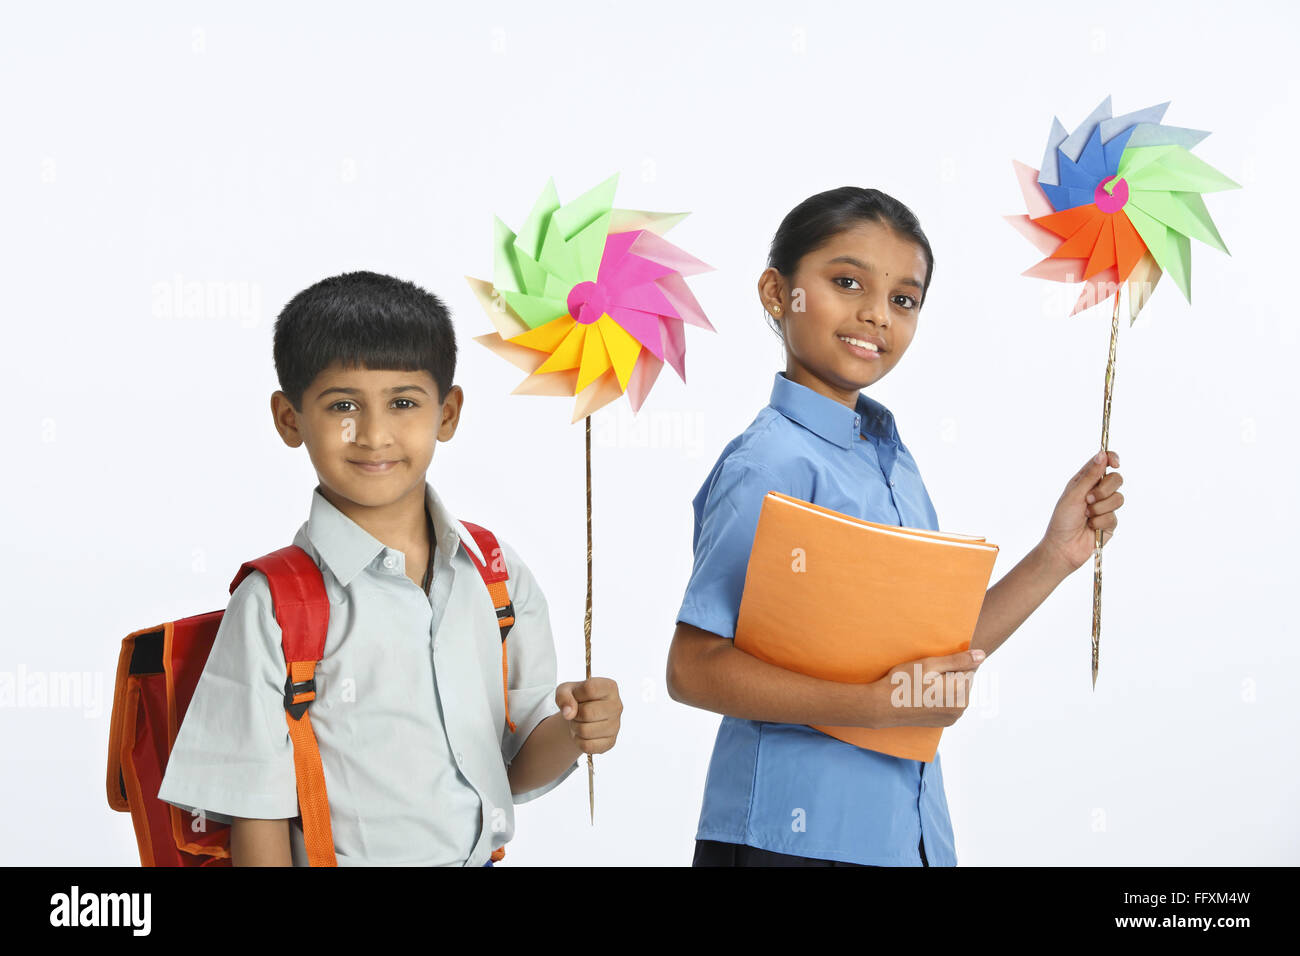 Rural boy and girl holding whirligig in left hands MR#743C,743D - Stock Image